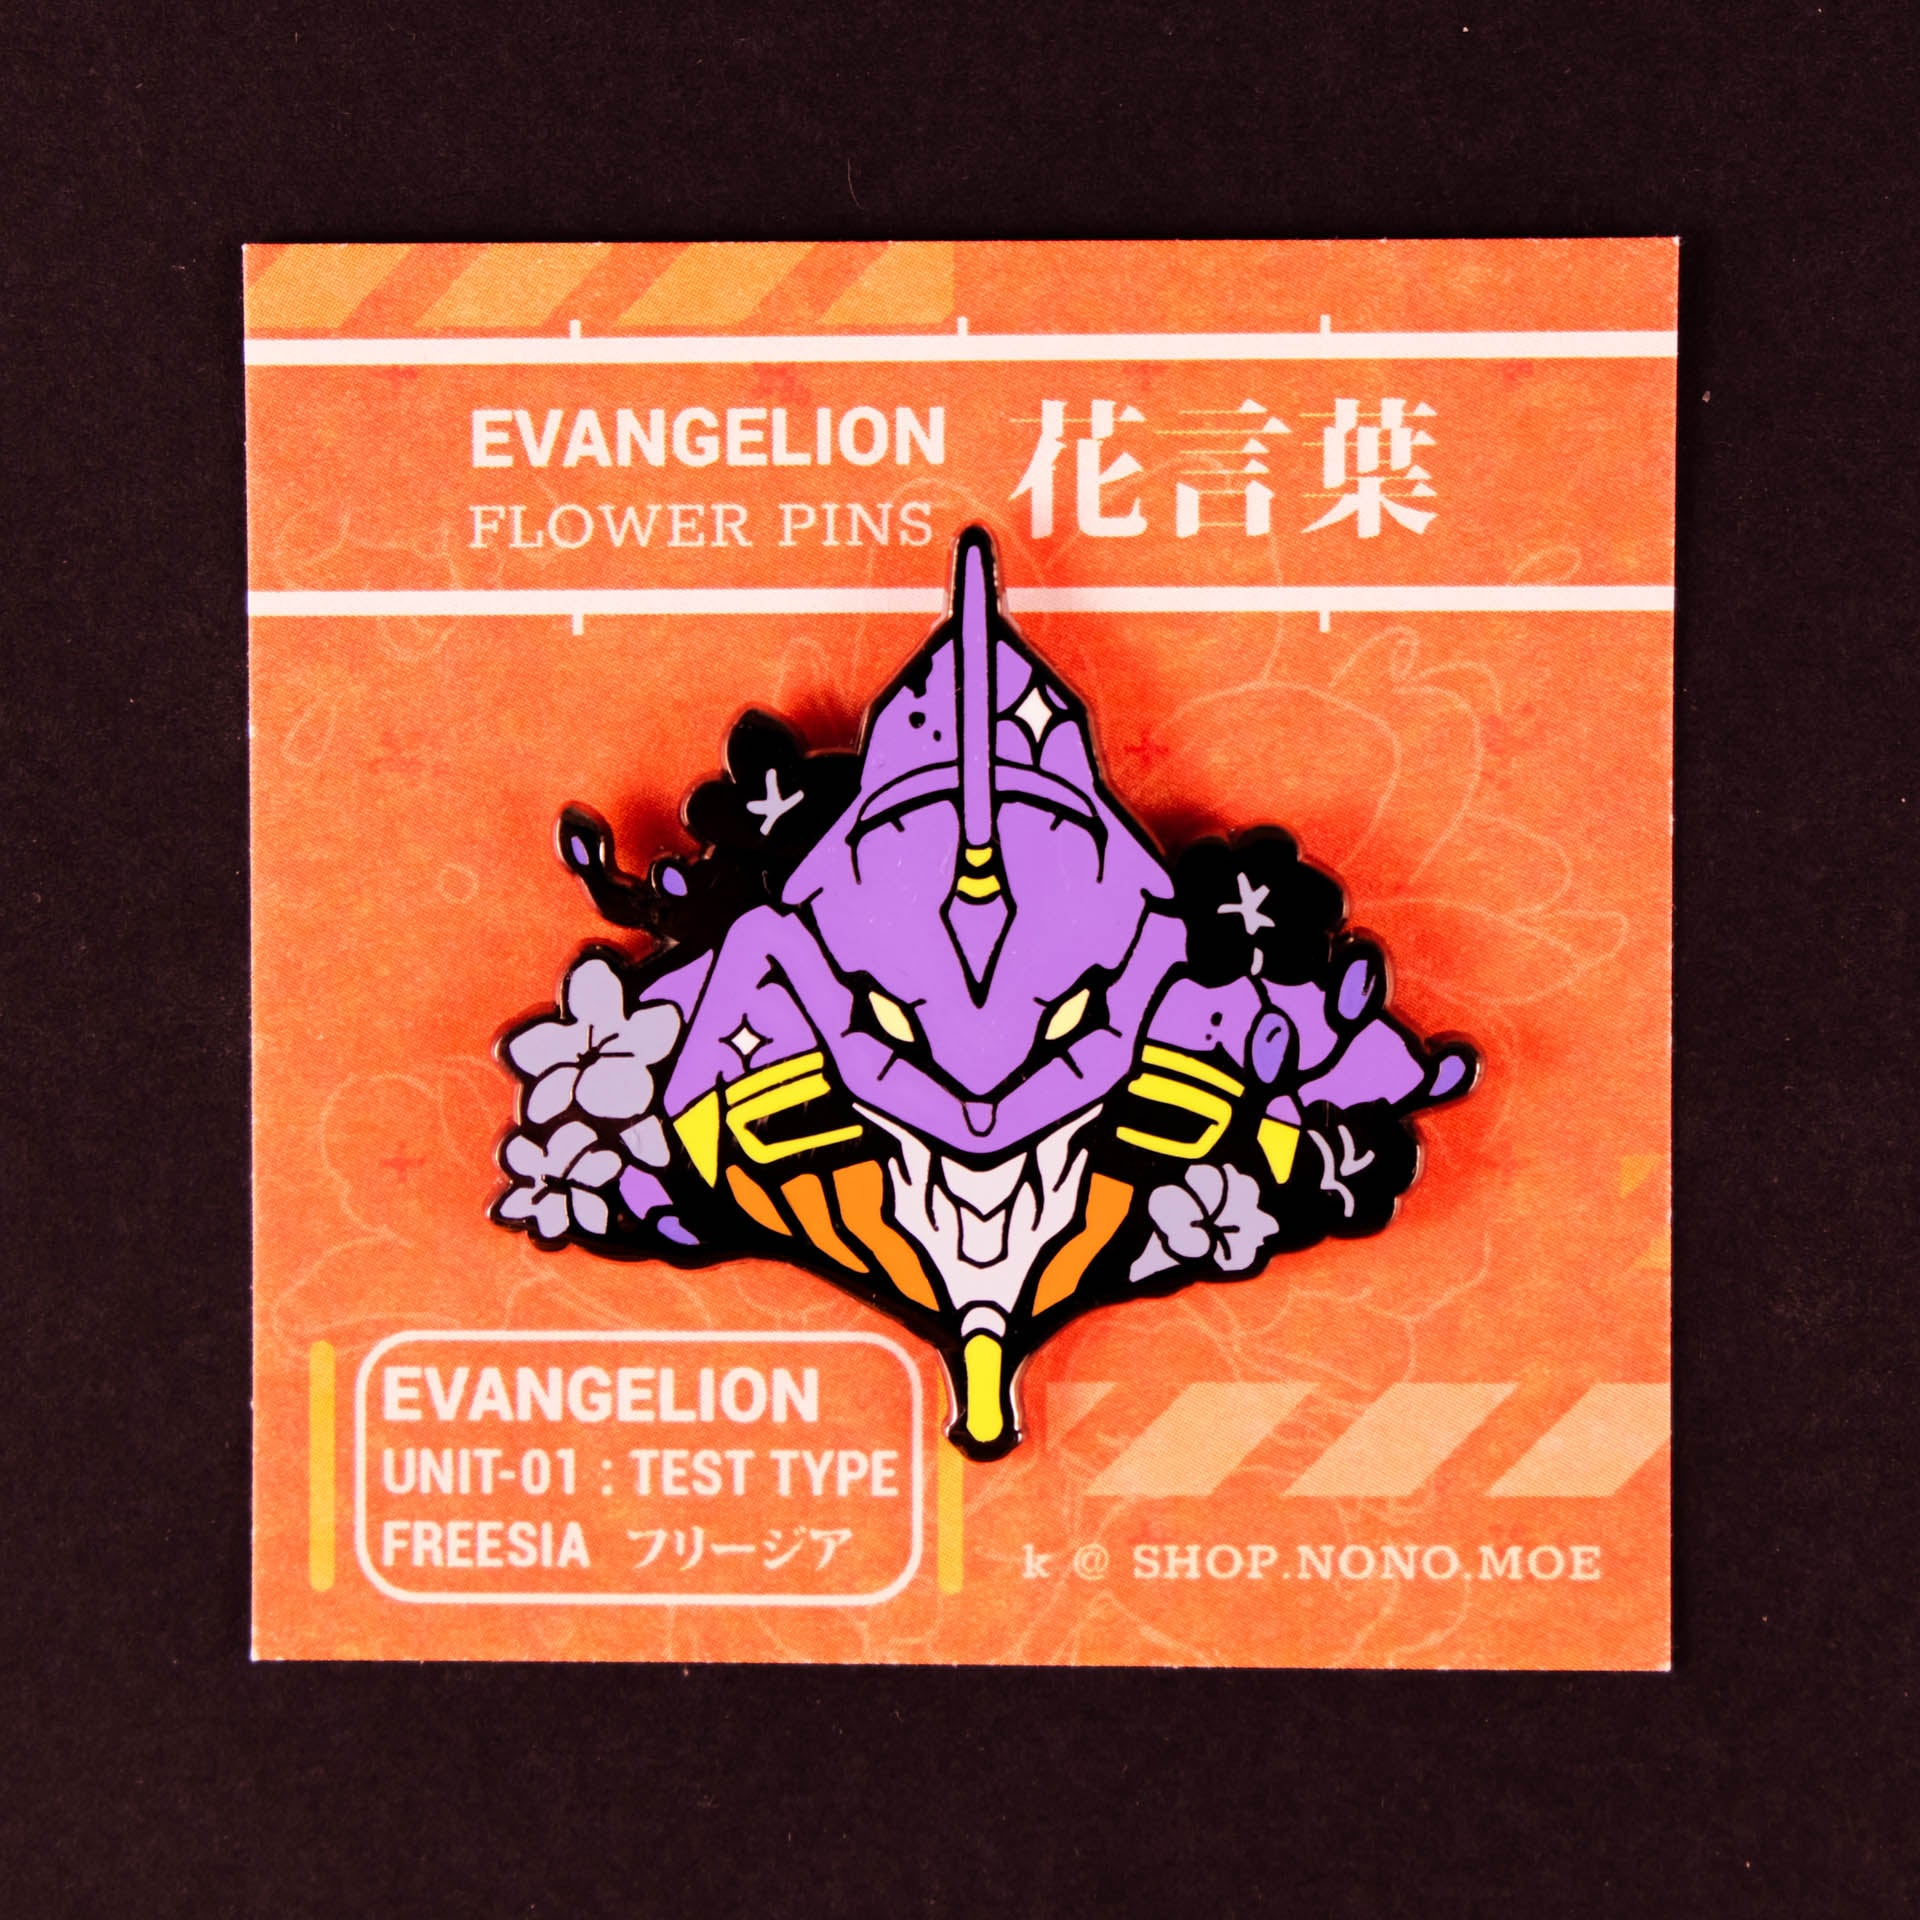 Evangelion - Unit-01 Enamel Pin